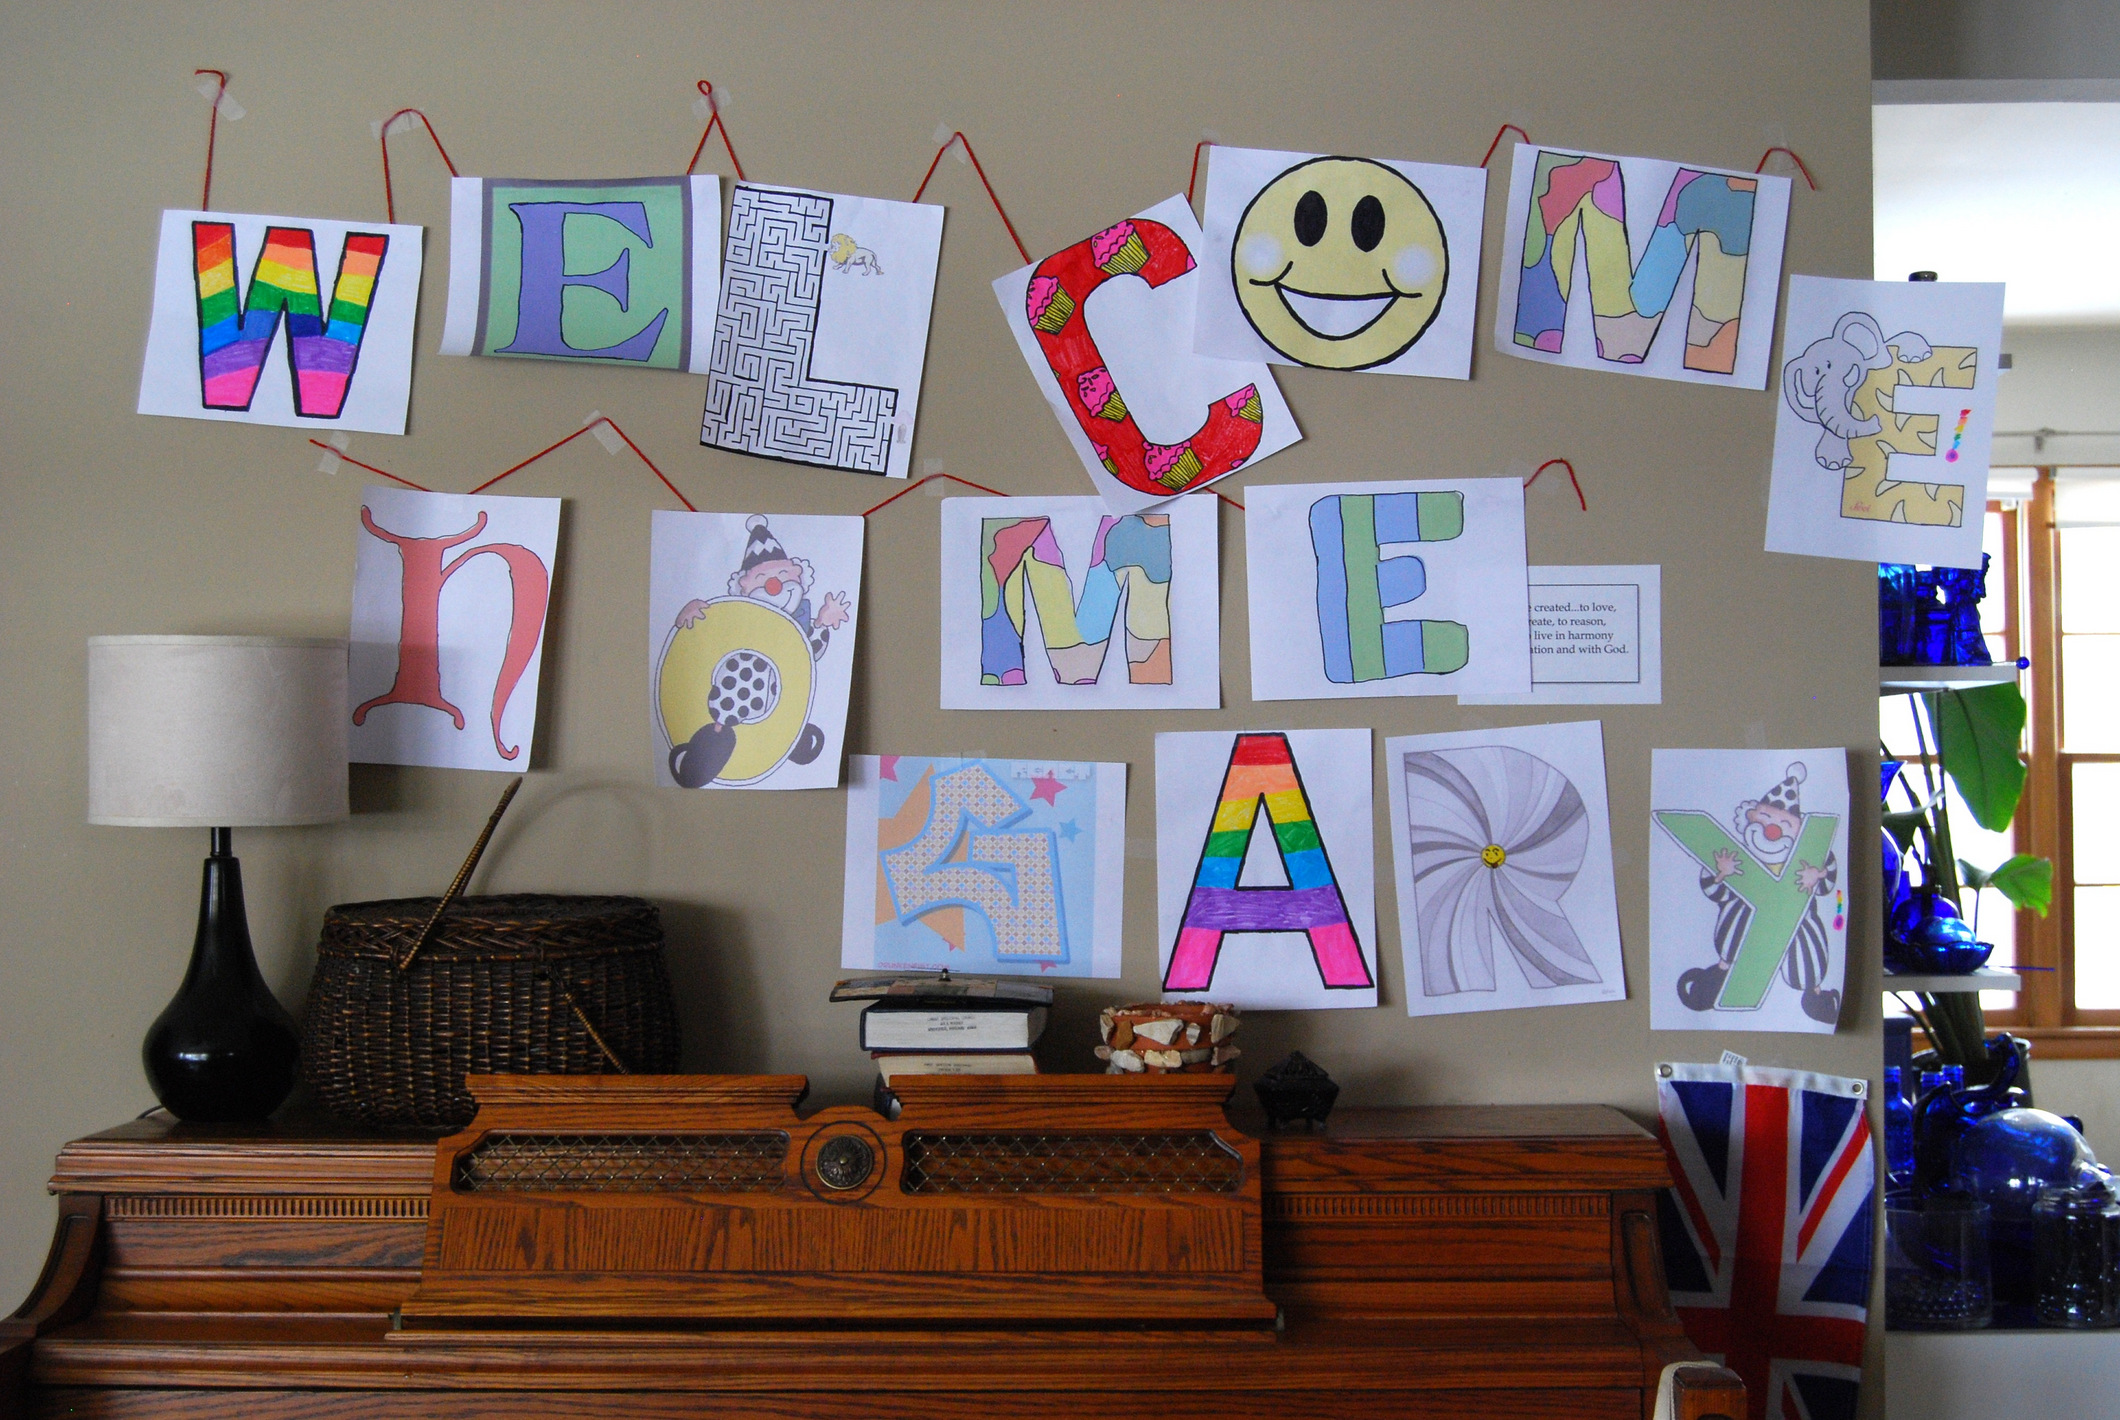 Katie and Lanie made a welcome banner for my arrival